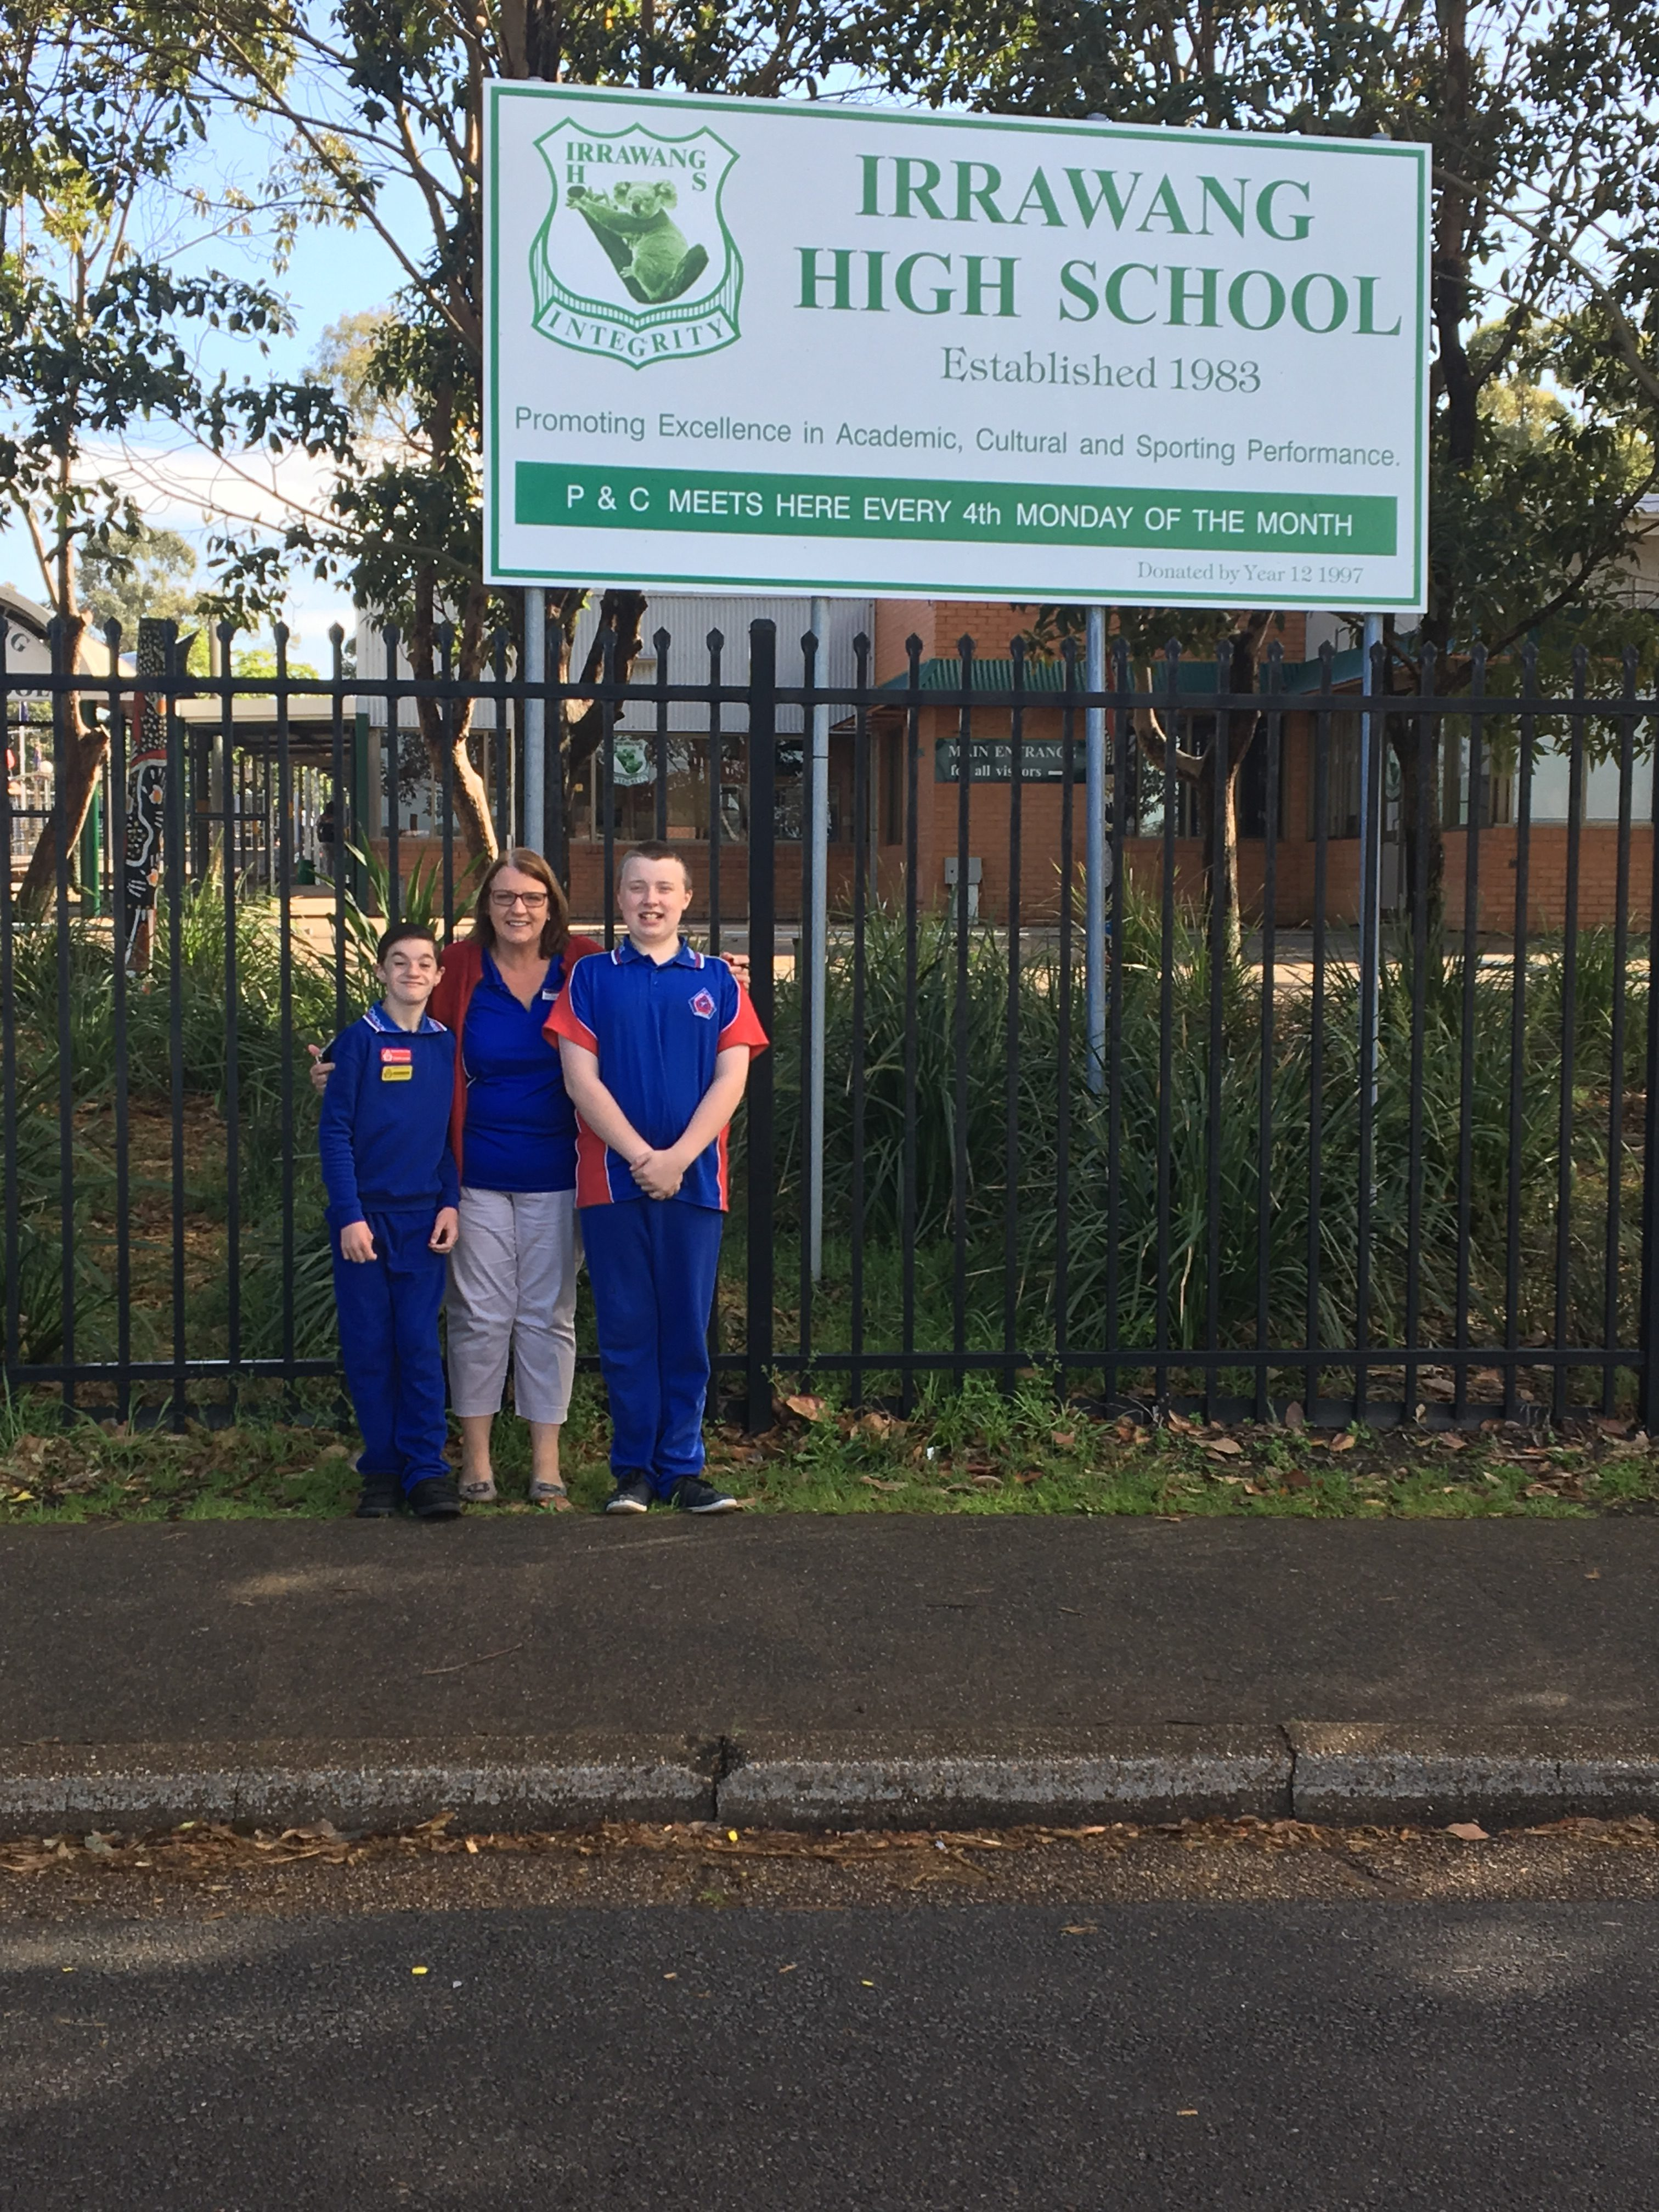 2.Otto and Joel with their Learning Support Teacher, Sue Marriott, outside Irrawang High School.